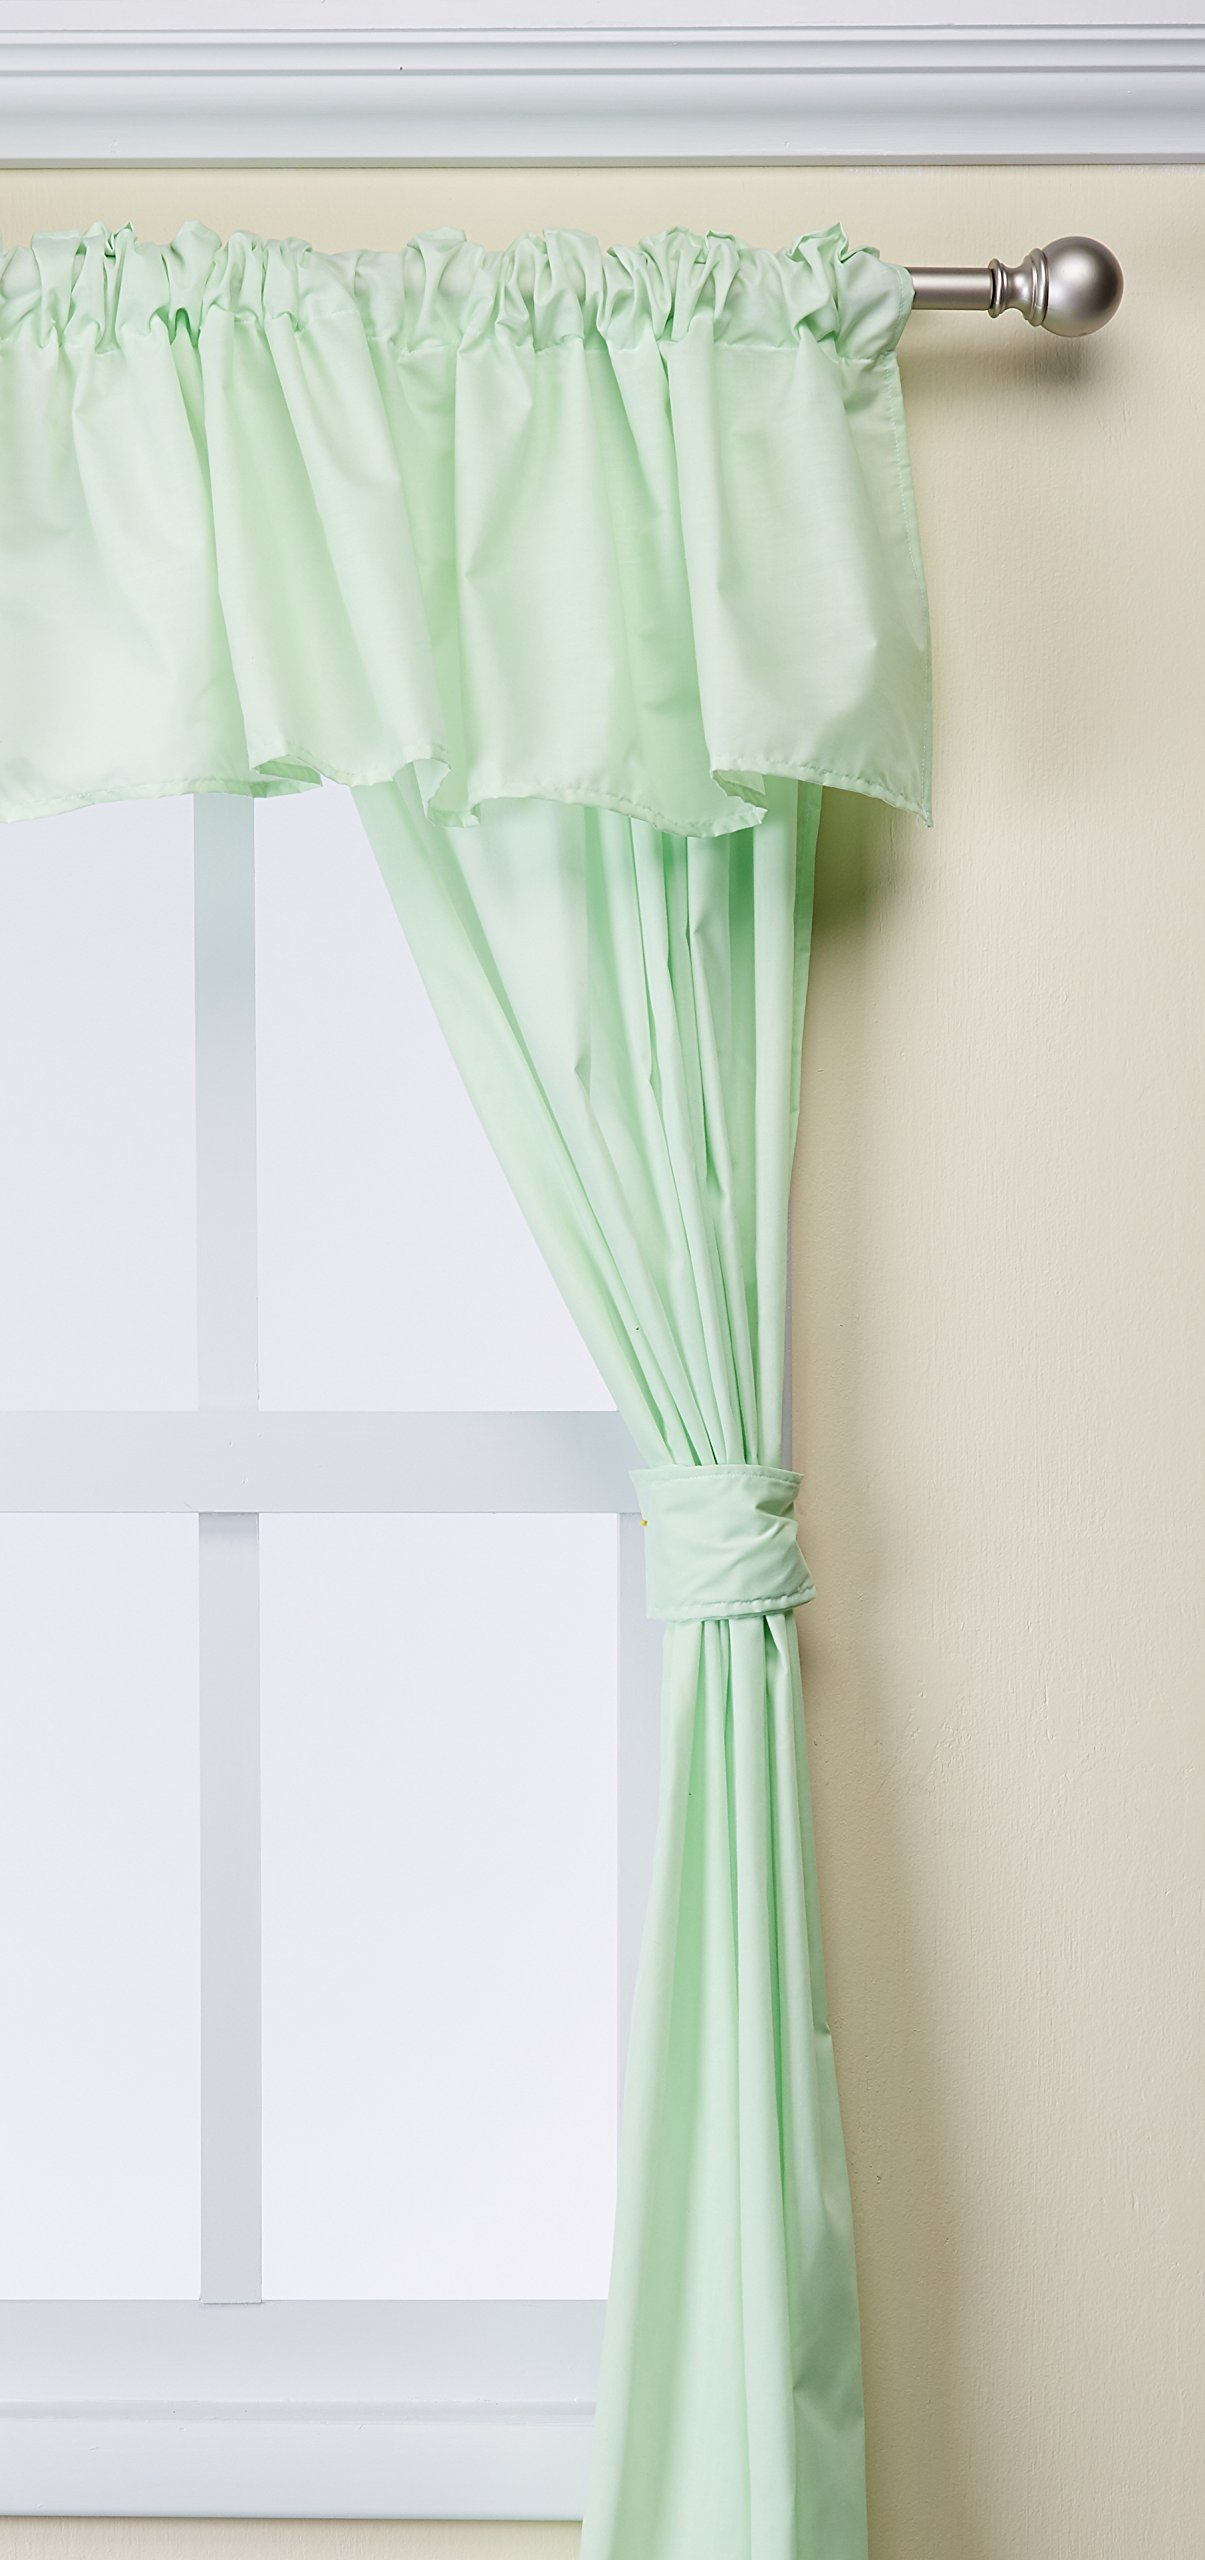 Baby Doll Bedding Solid 5-Piece Window Valance Curtain Set, Mint